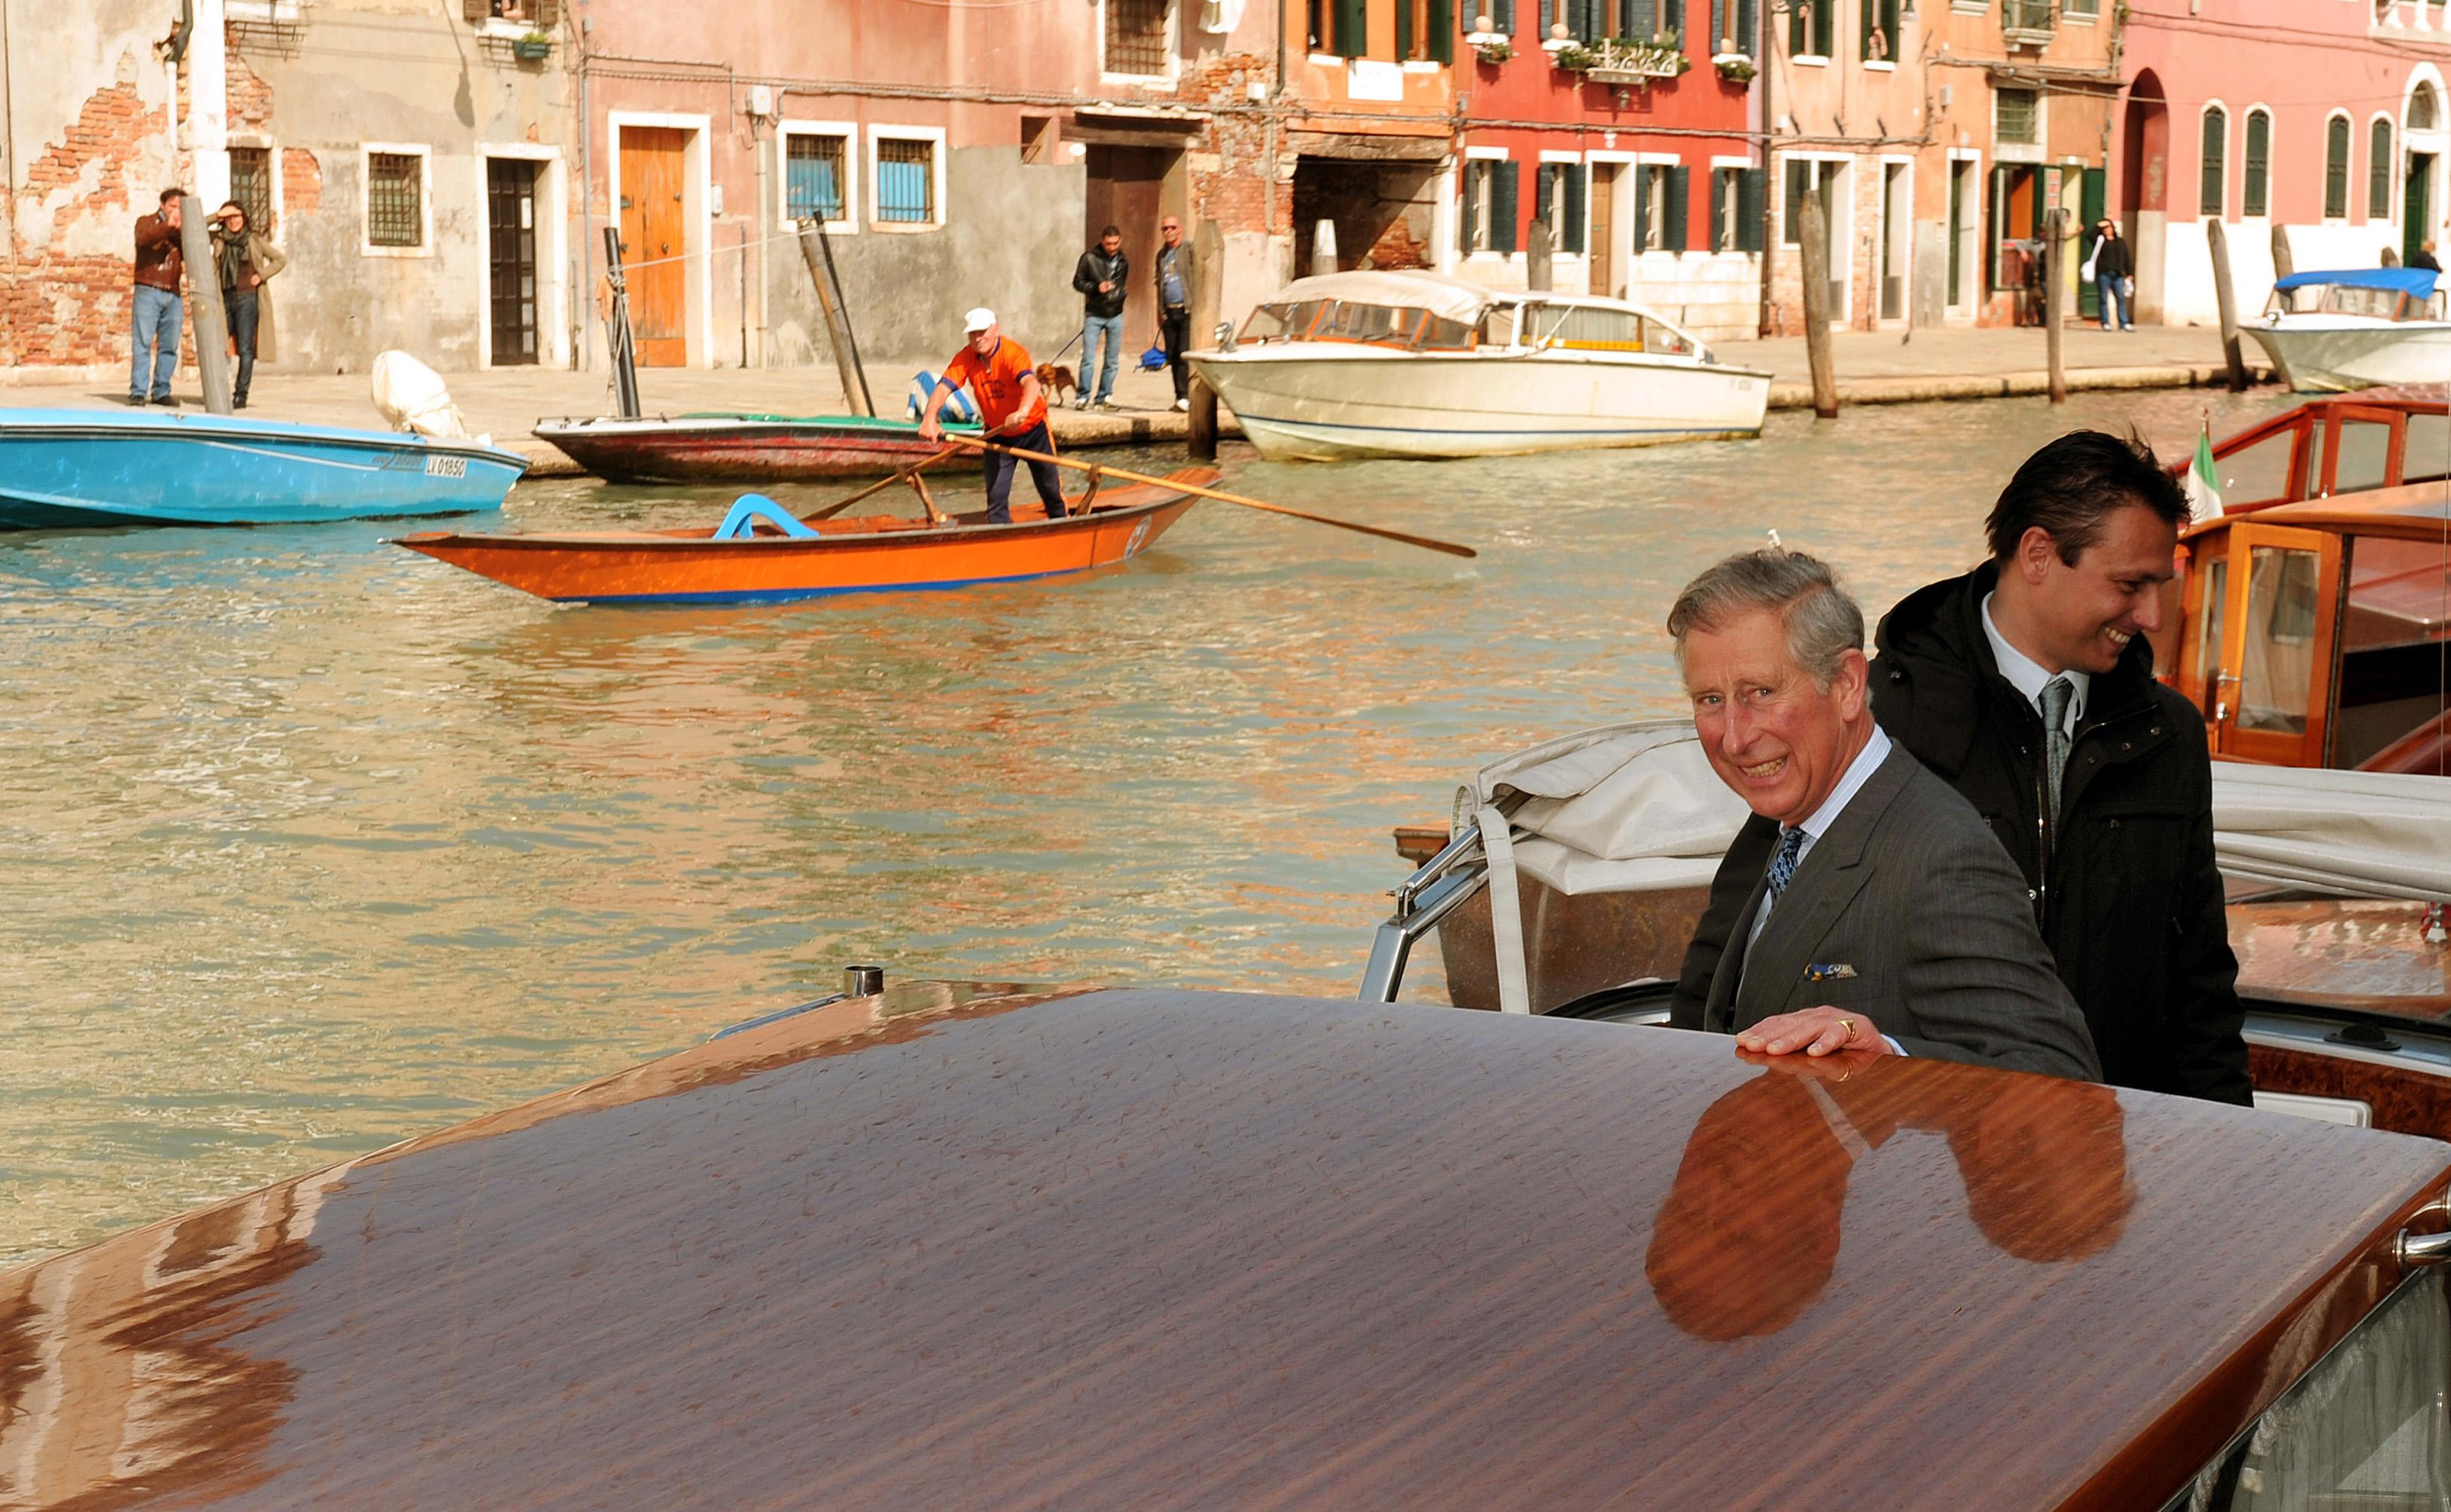 The Prince of Wales visits Venice in 2009